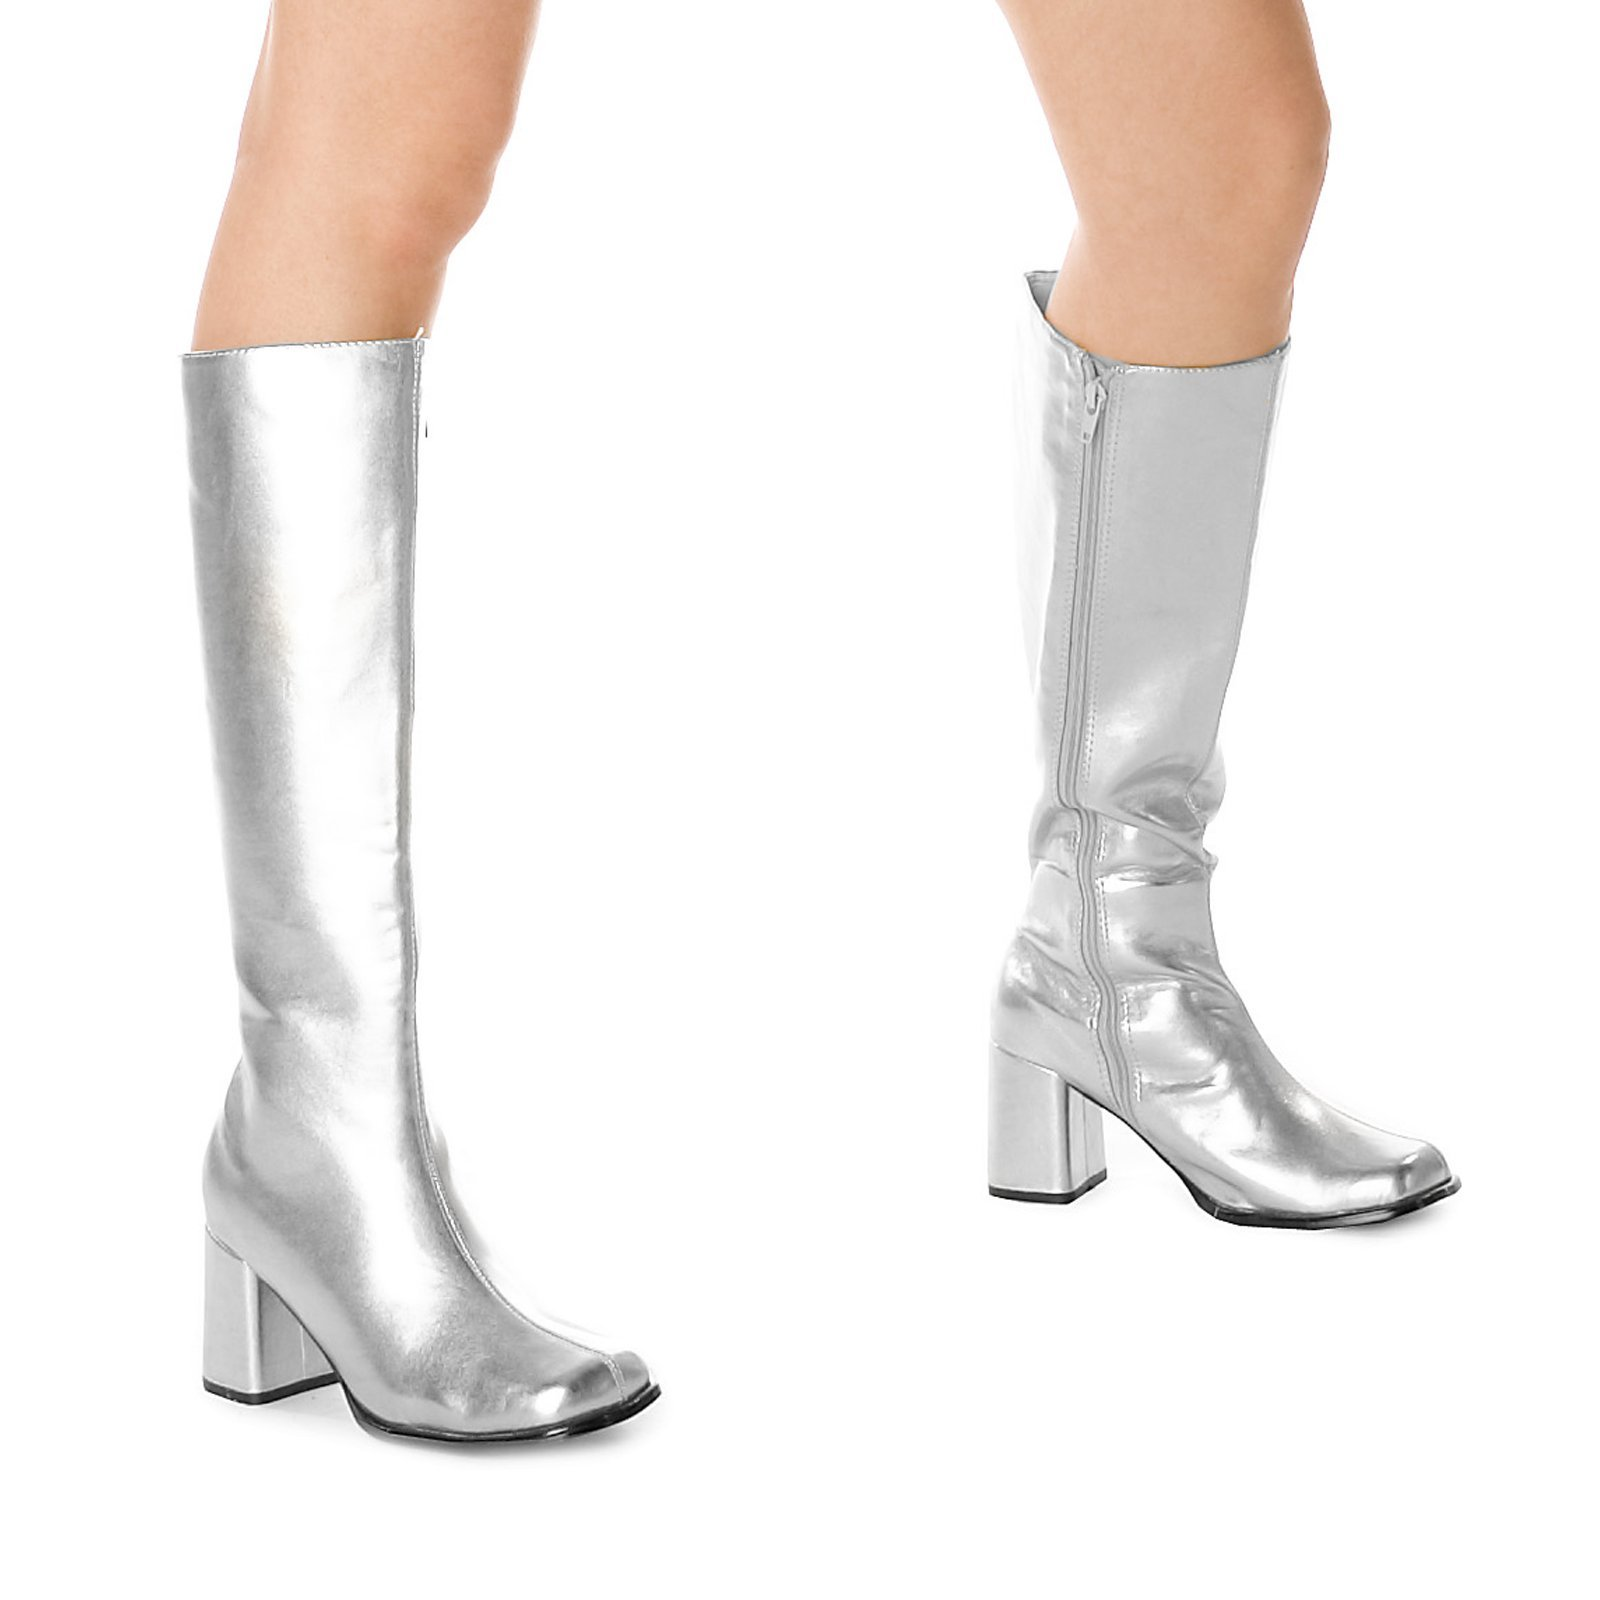 ELLIE Shoes Knee High Boot Side Zipper Retro Metallic GOGO Silver -12 by Ellie Shoes